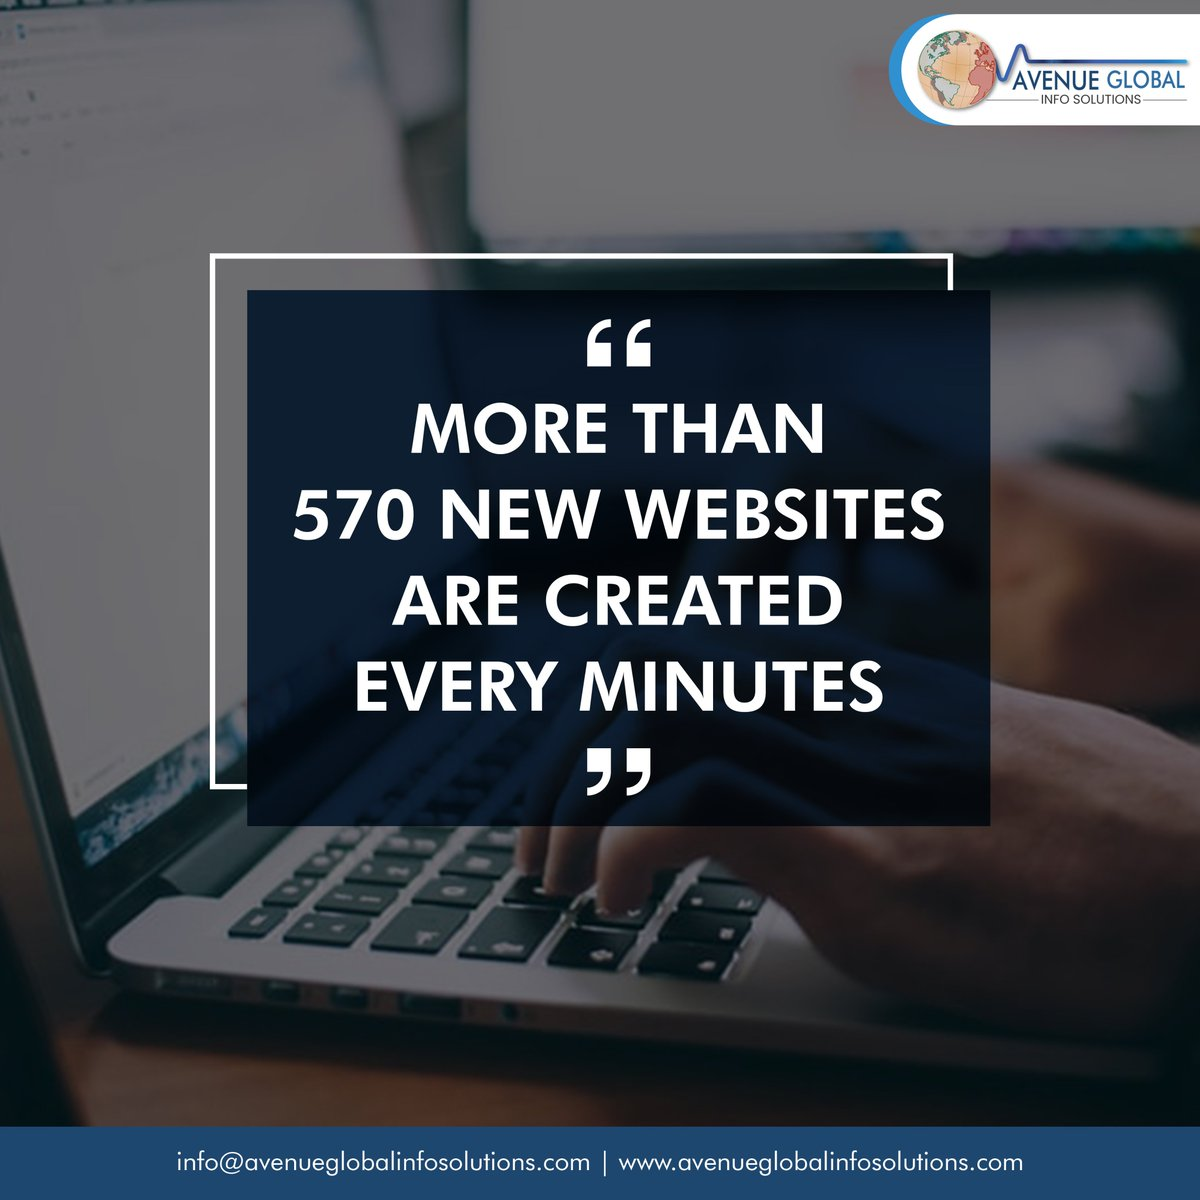 """""""More than 570 websites are created every minutes""""  #facts #websitefacts #whywebdevelopment #webdesigncompany #websitedeveloper #webdesigntips #instatech #instatechno #socialmediamarketing #Avenueglobalinfosolutions #avenueglobal #Websitedevelopment #websitebuilder #ITcompanypic.twitter.com/DGIlb0oUMY"""